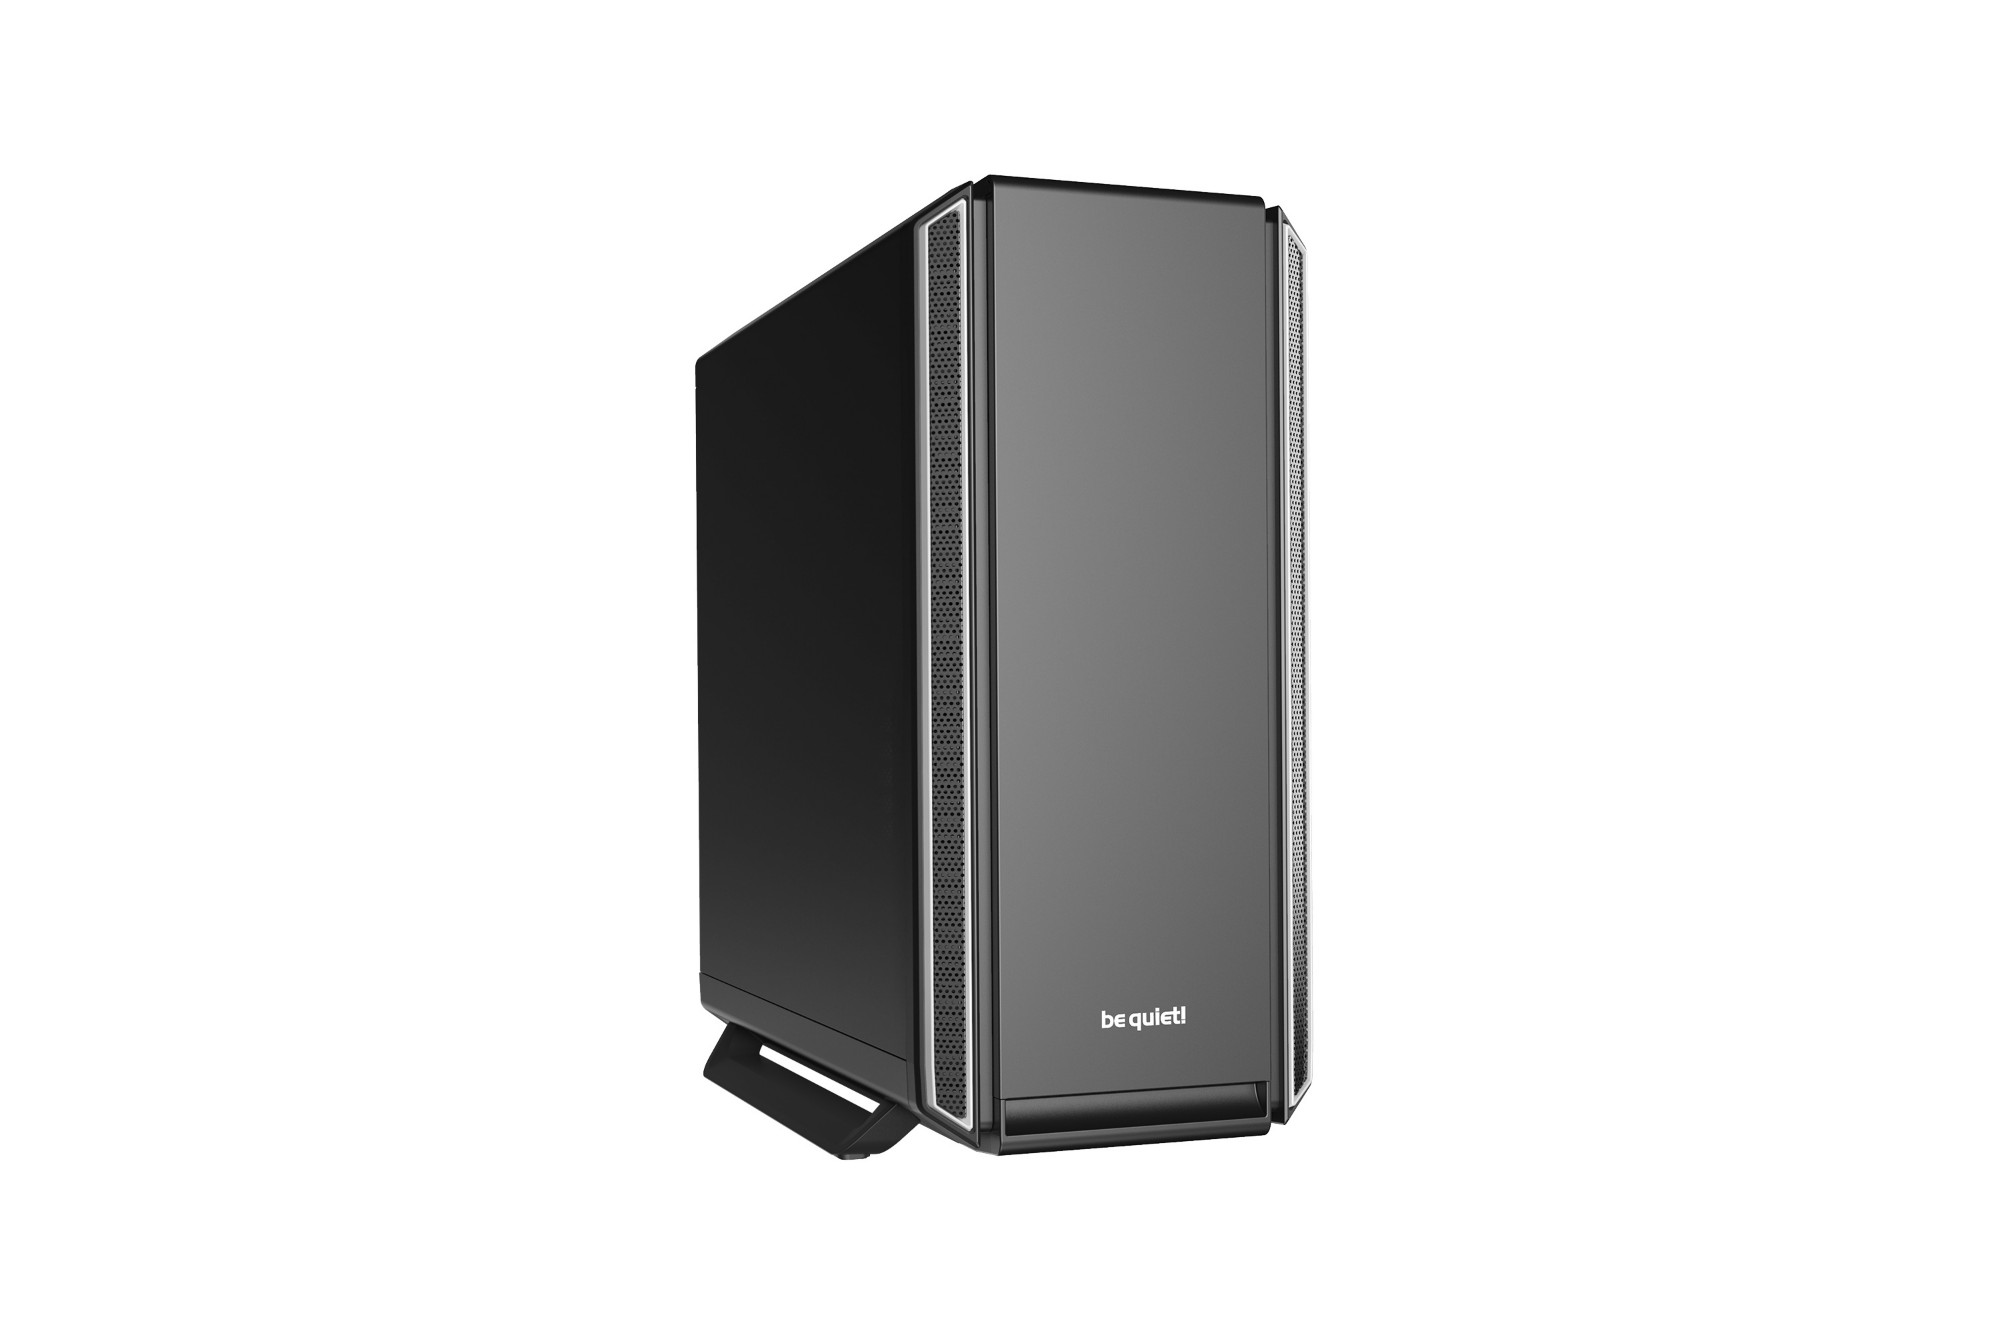 BE QUIET! BG030 SILENT BASE 801 COMPUTER CASE MIDI-TOWER BLACK, SILVER